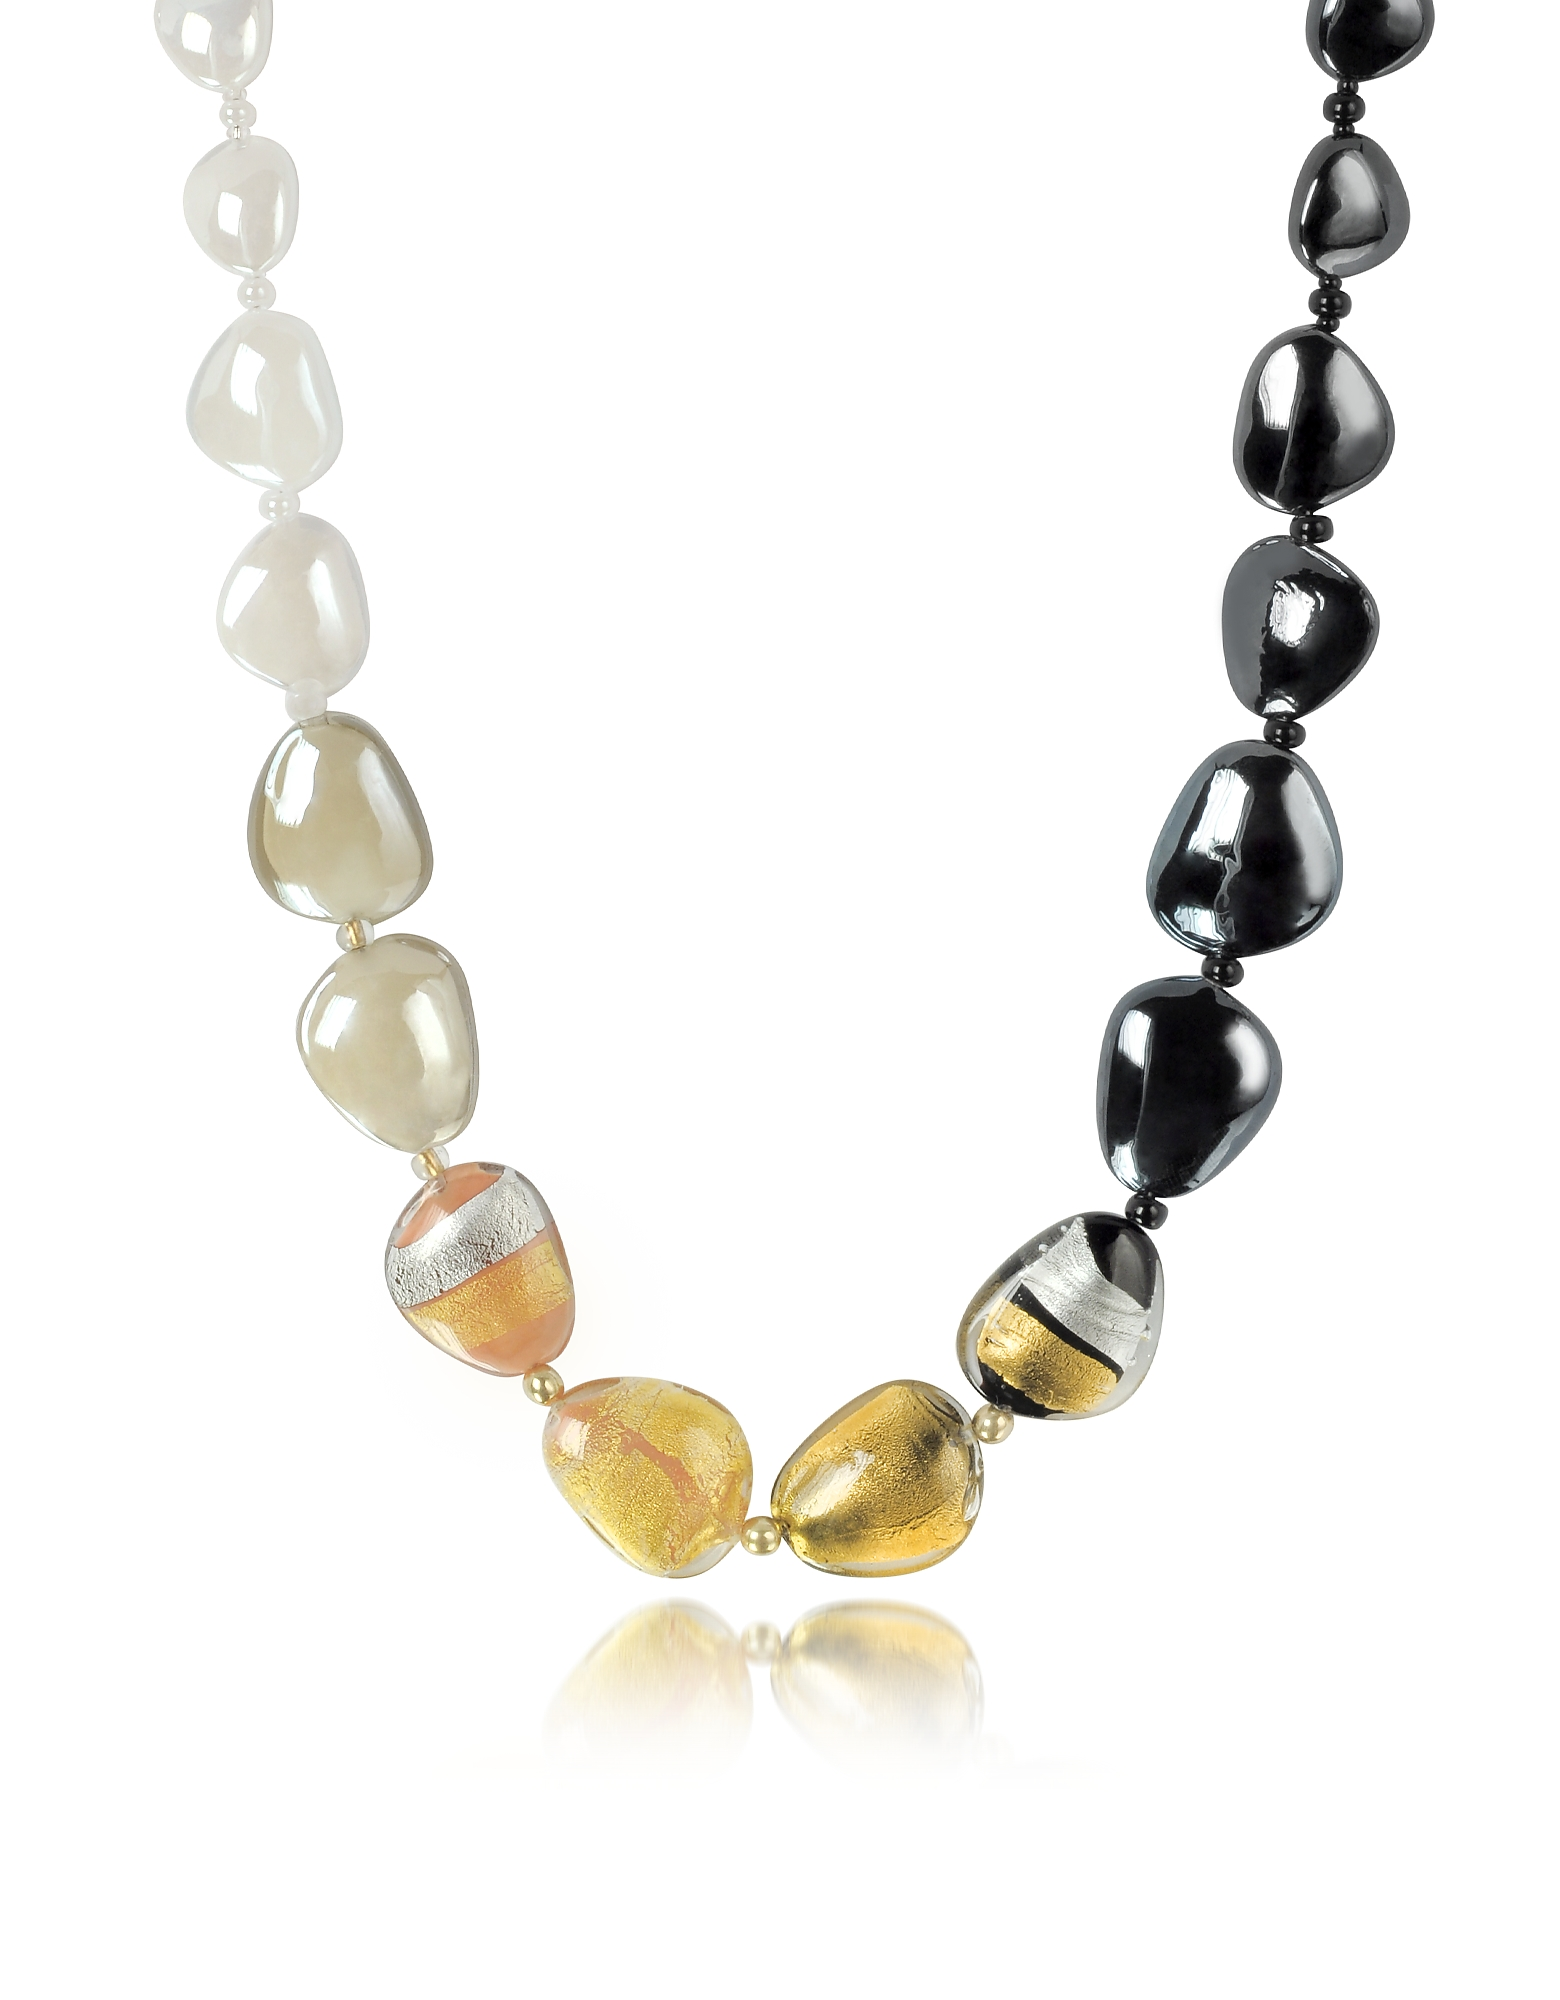 Antica Murrina Necklaces, Moretta Pastel Glass Beads w/24kt Gold Leaf Necklace